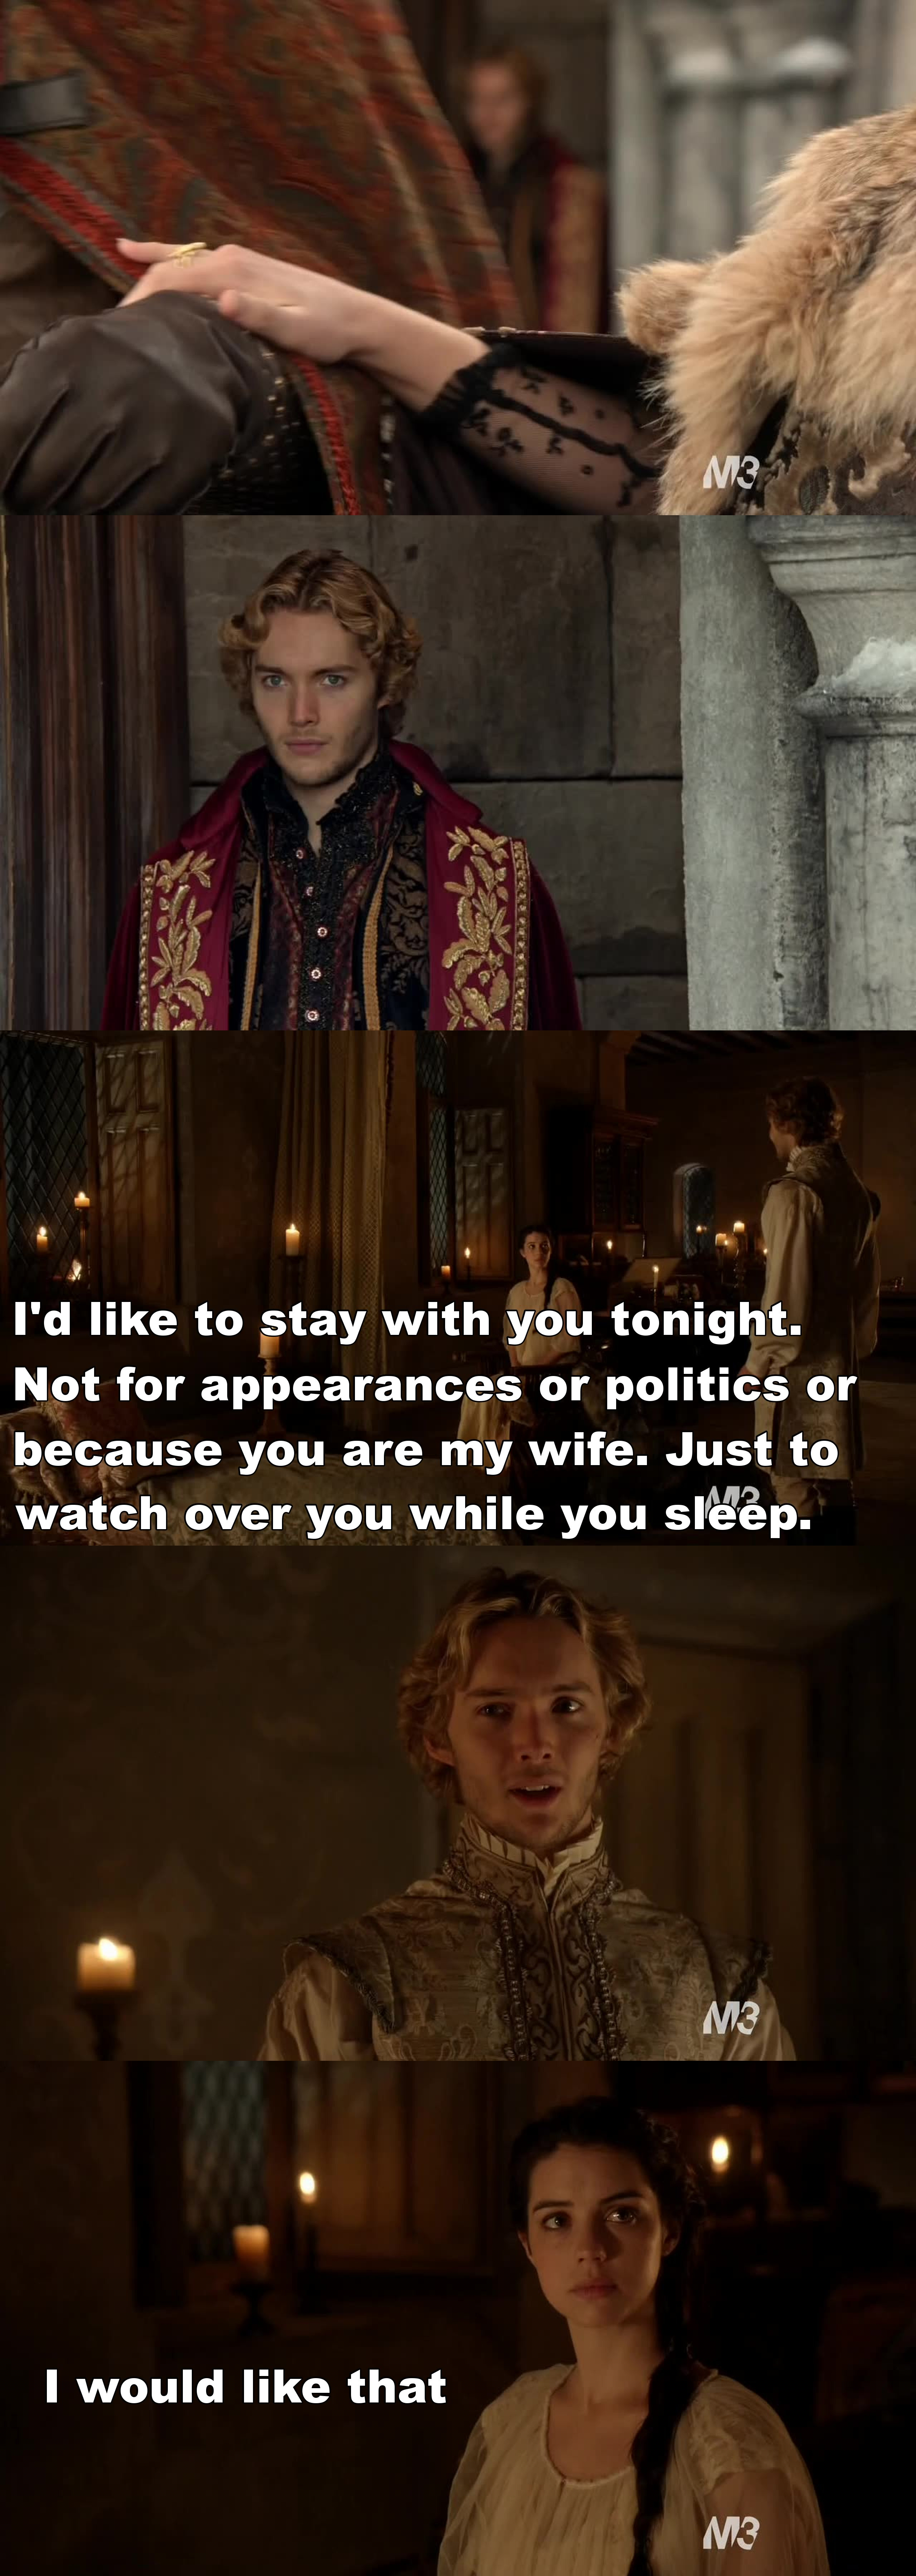 I believe in their love!!! #TeamFrary???